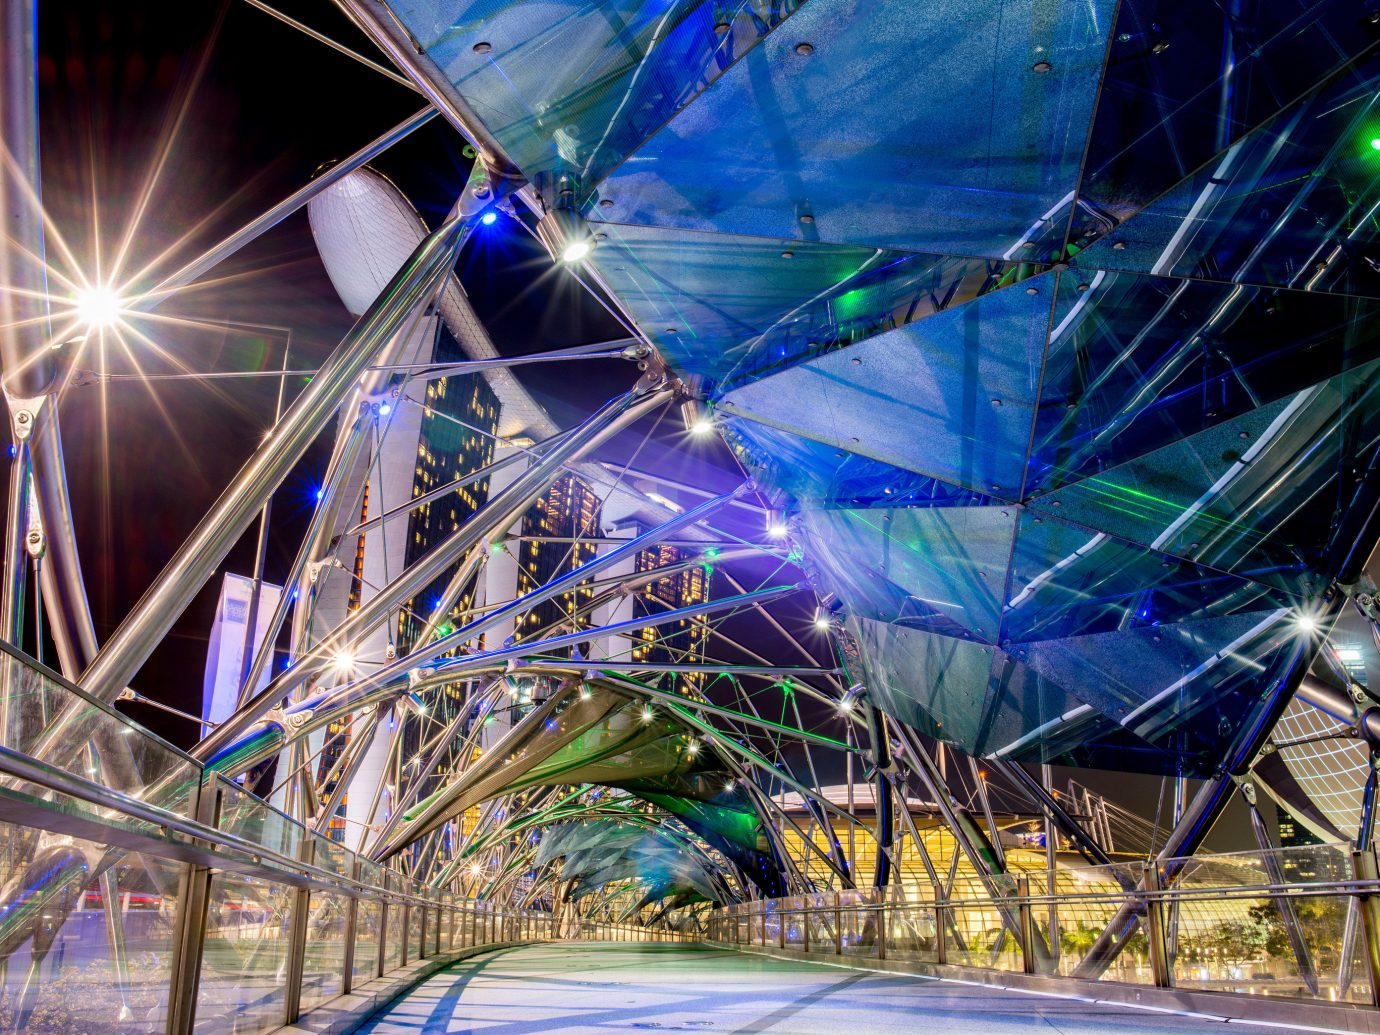 Offbeat Singapore Trip Ideas color blue light night ferris wheel atmosphere of earth tourist attraction reflection amusement park colorful